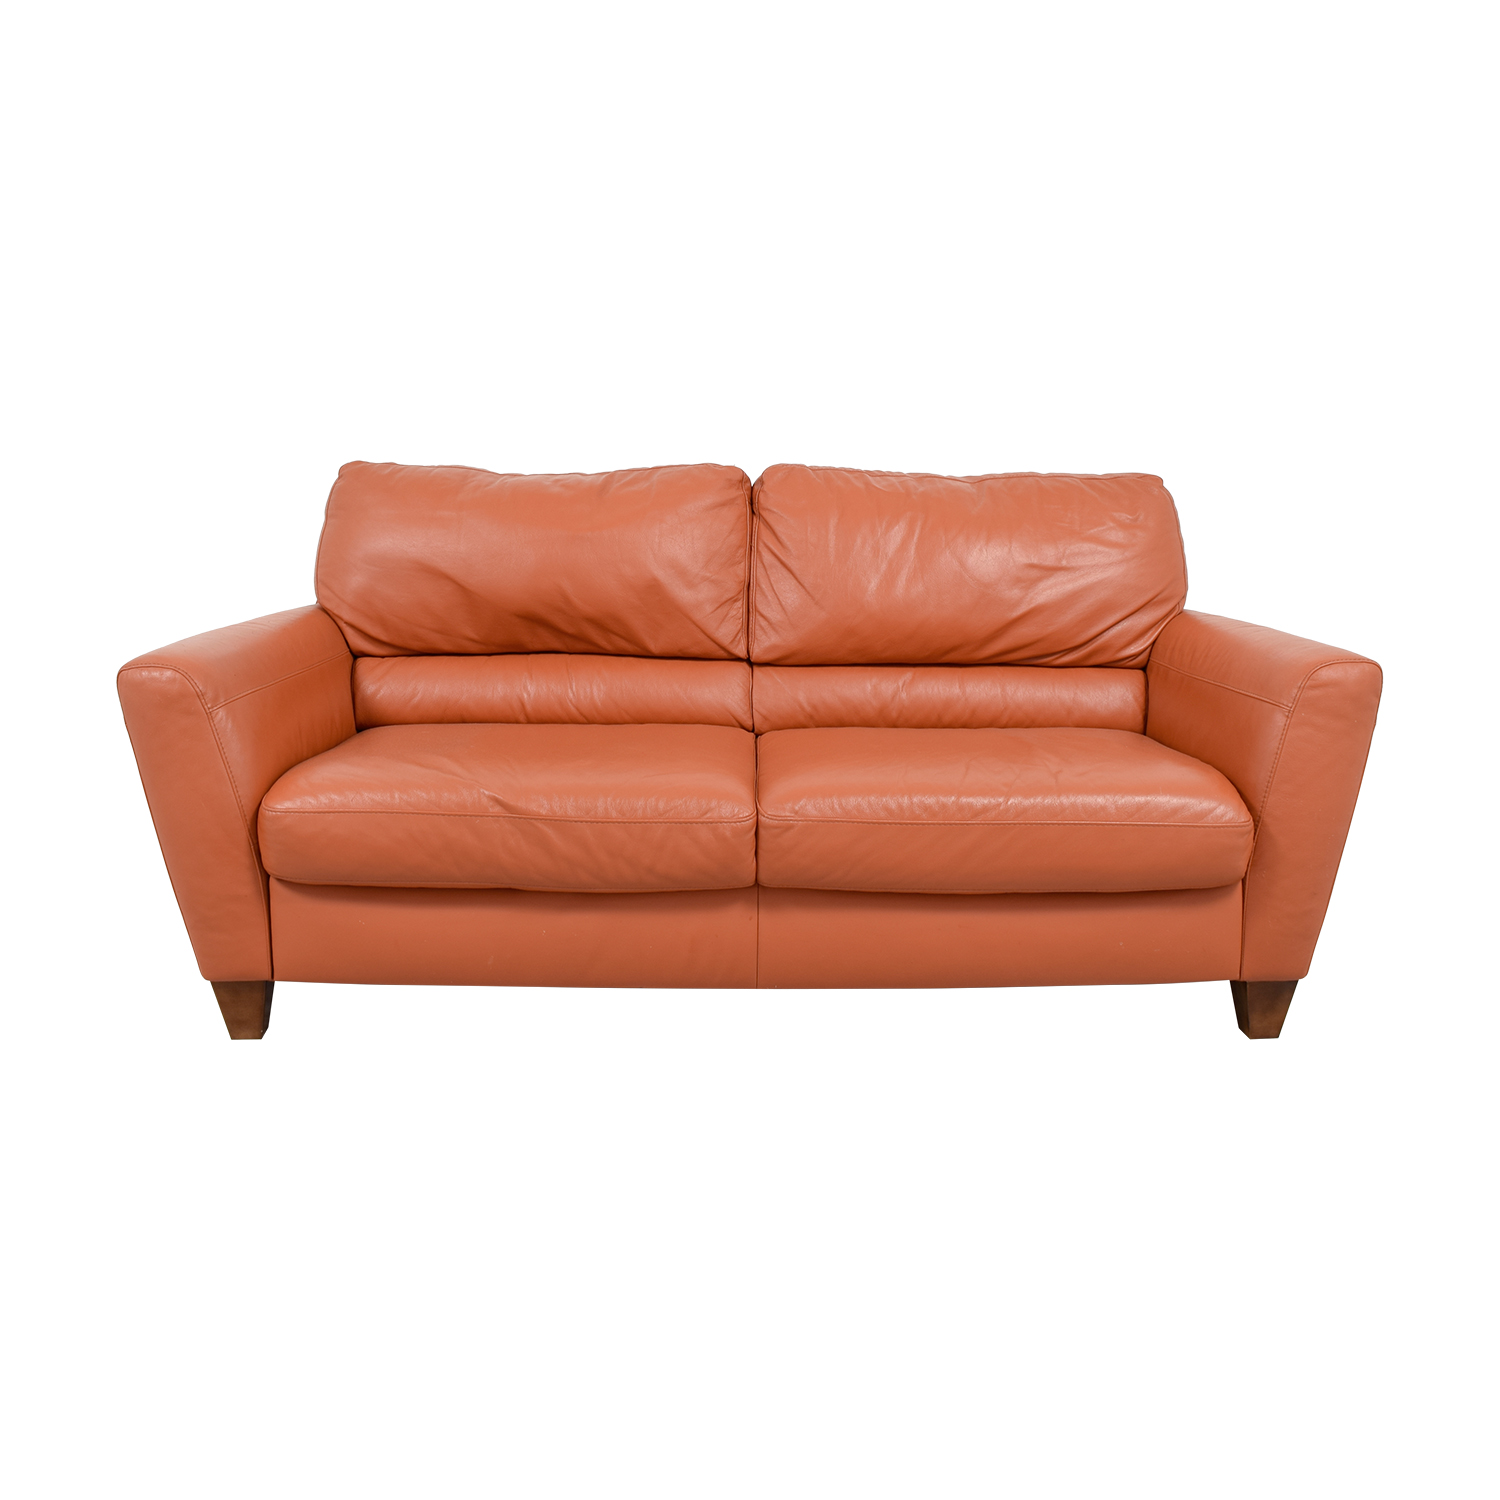 Natuzzi Natuzzi Amalfi Burnt Orange Leather Sofa Used